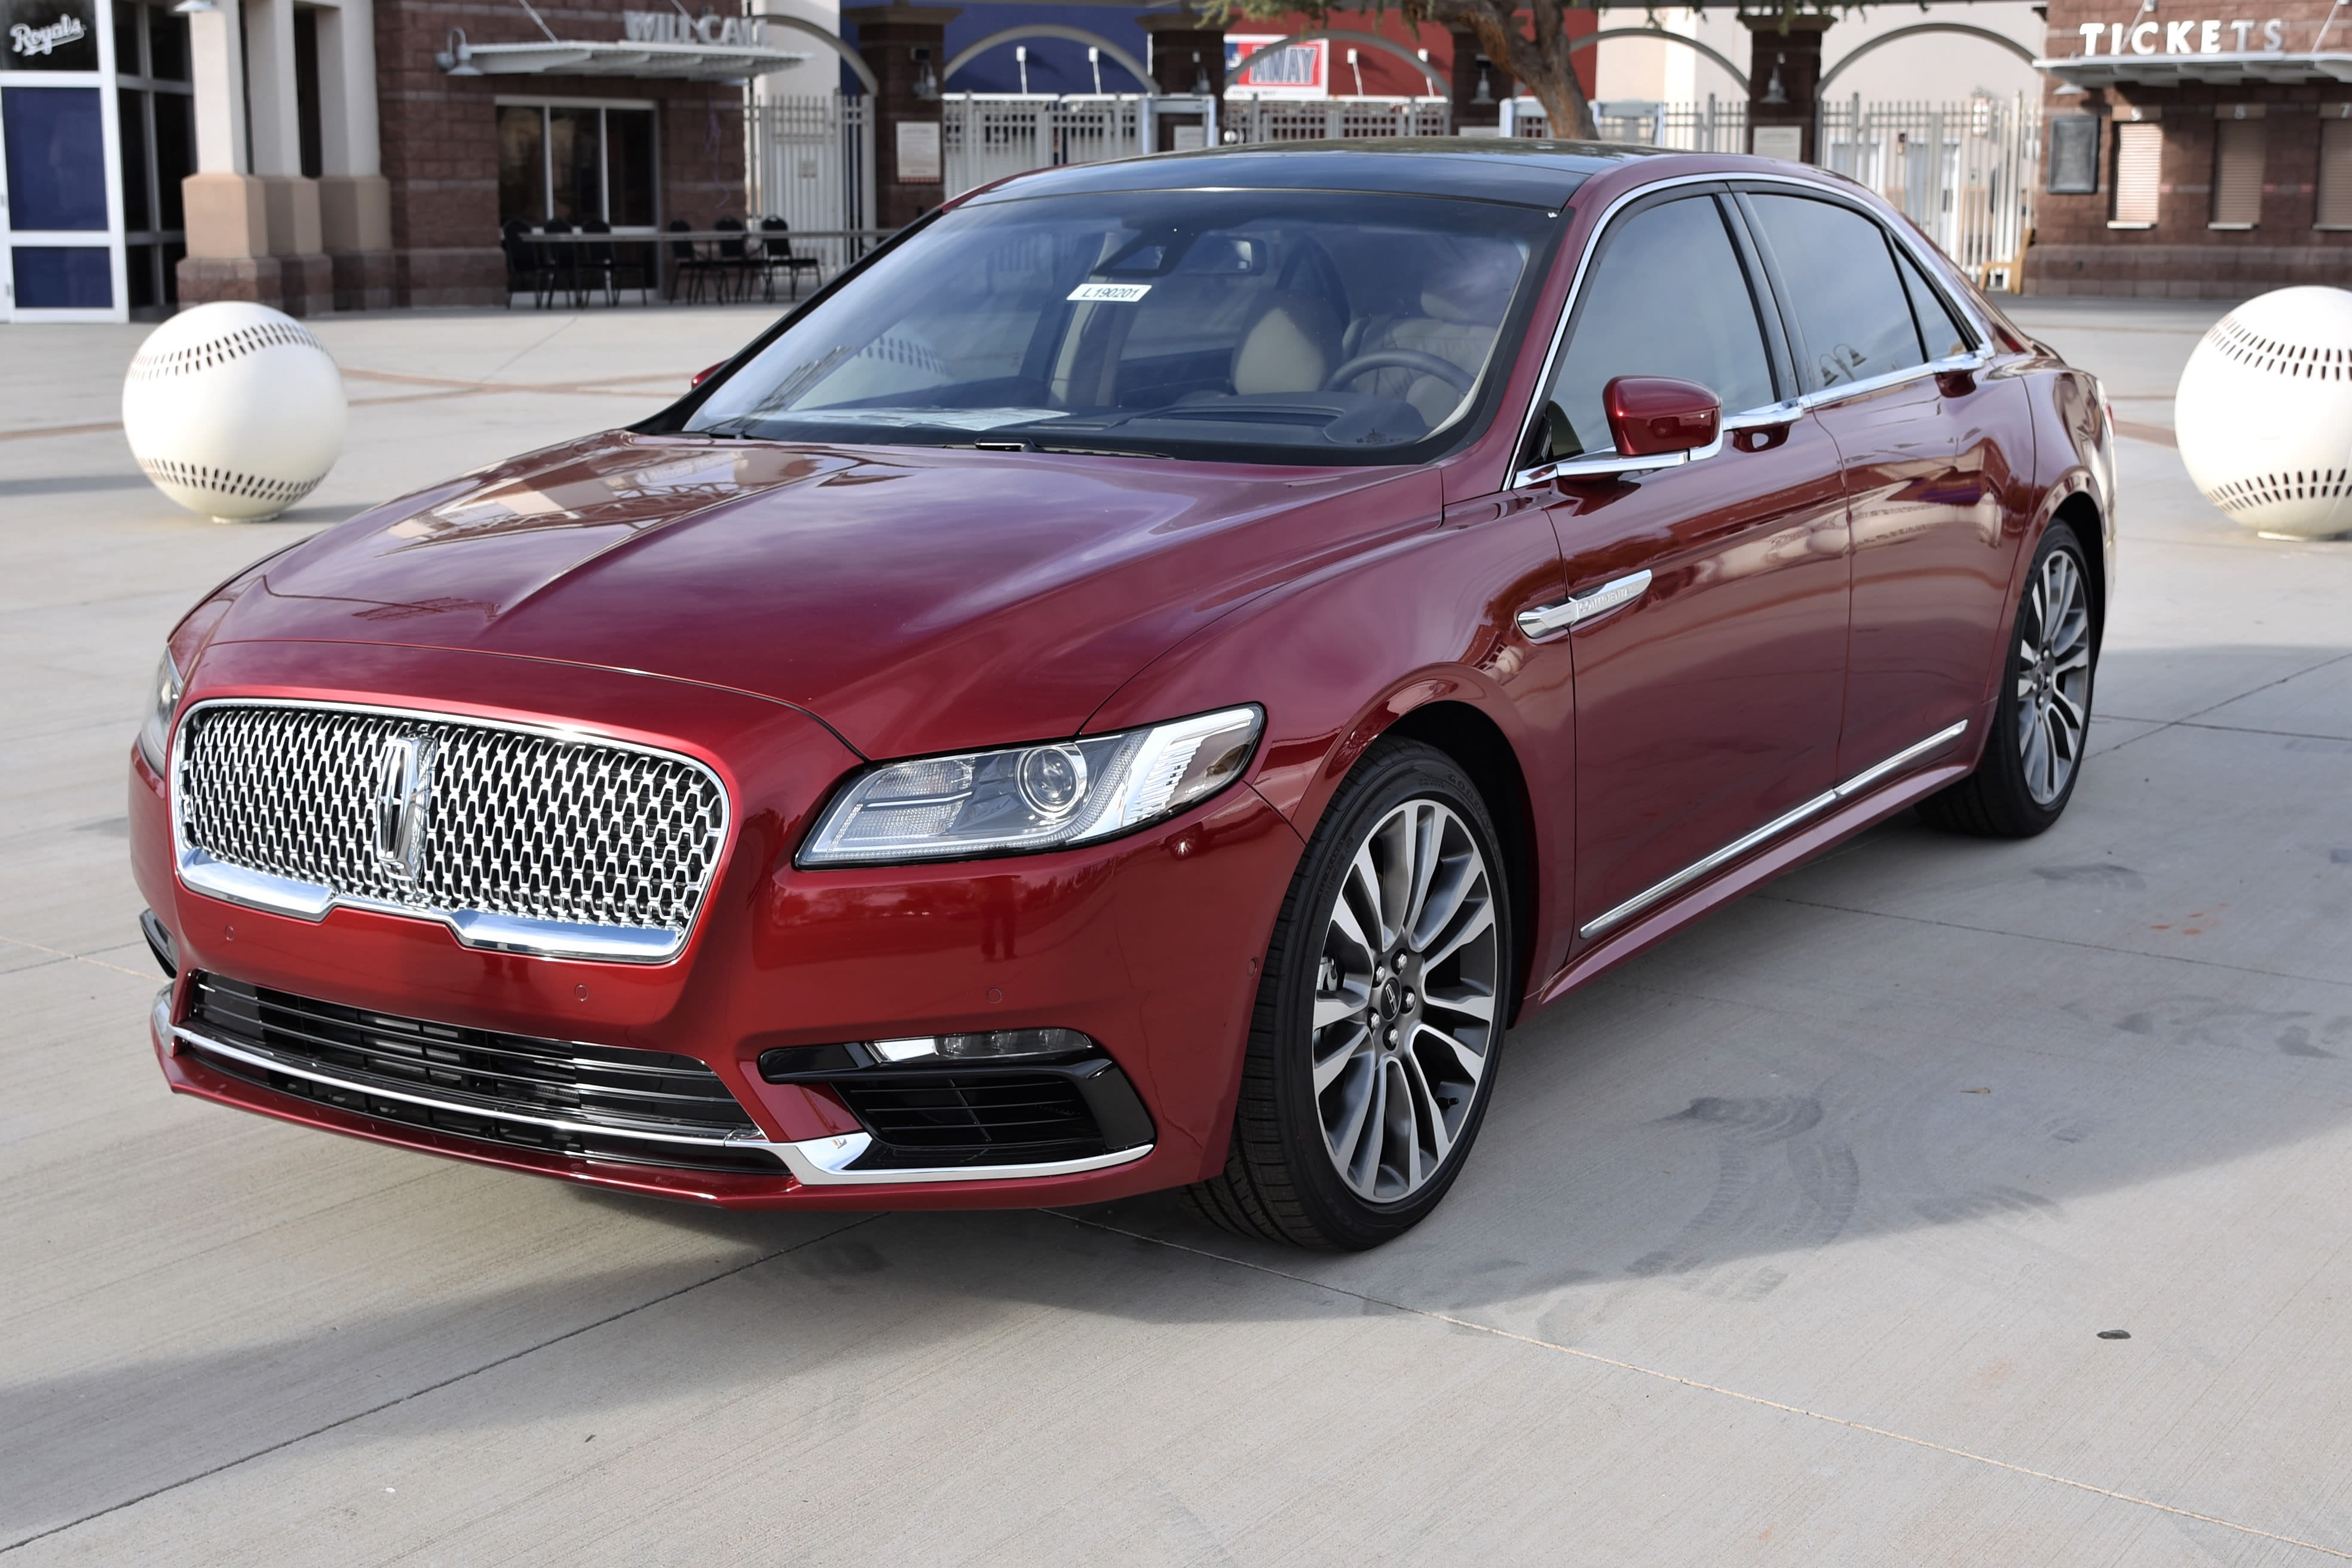 Ford Recalls Over 27,000 Lincoln Continental Vehicles For Door Latch Issue